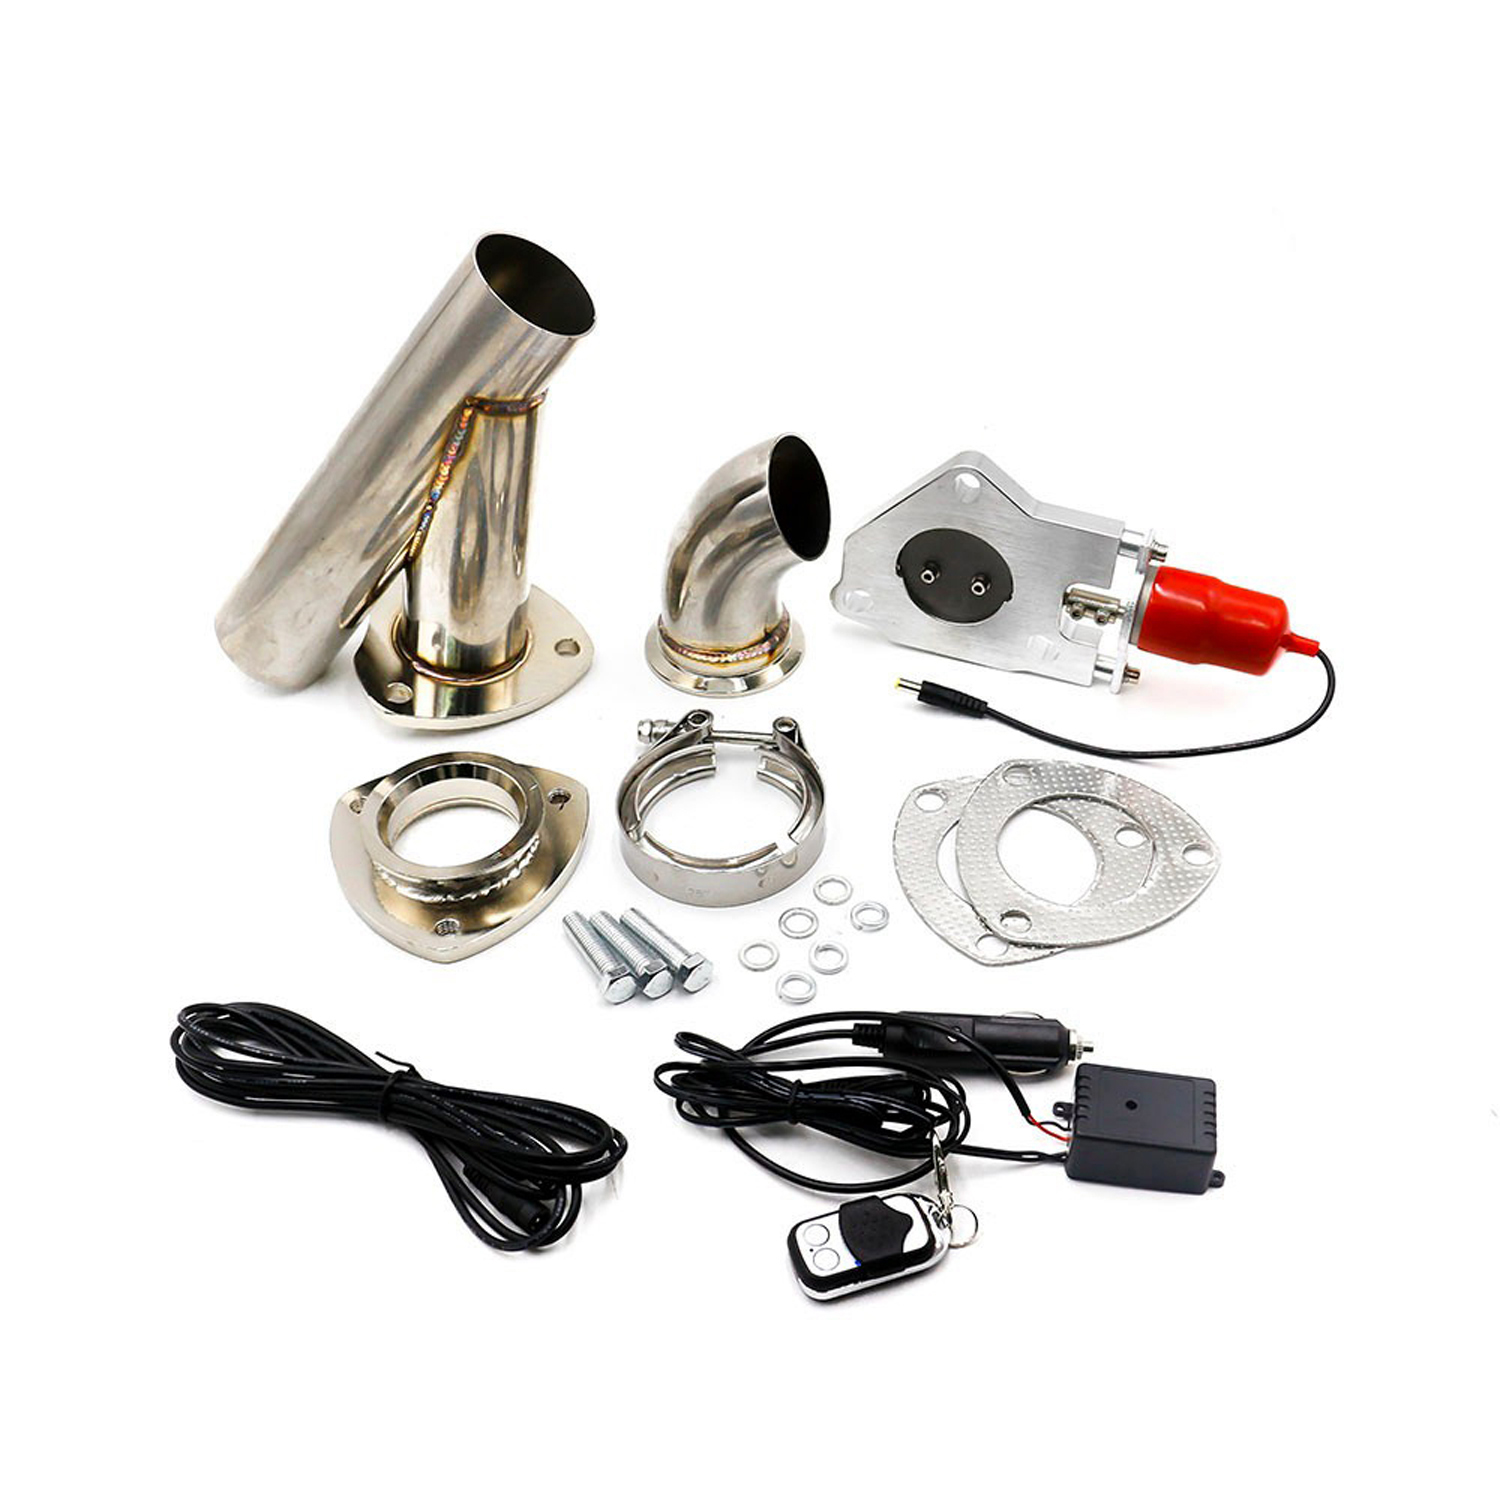 universal car 2 or 2 25 or 2 5 or 3 electric stainless exhaust cutout cut out dump valve switch with remote control